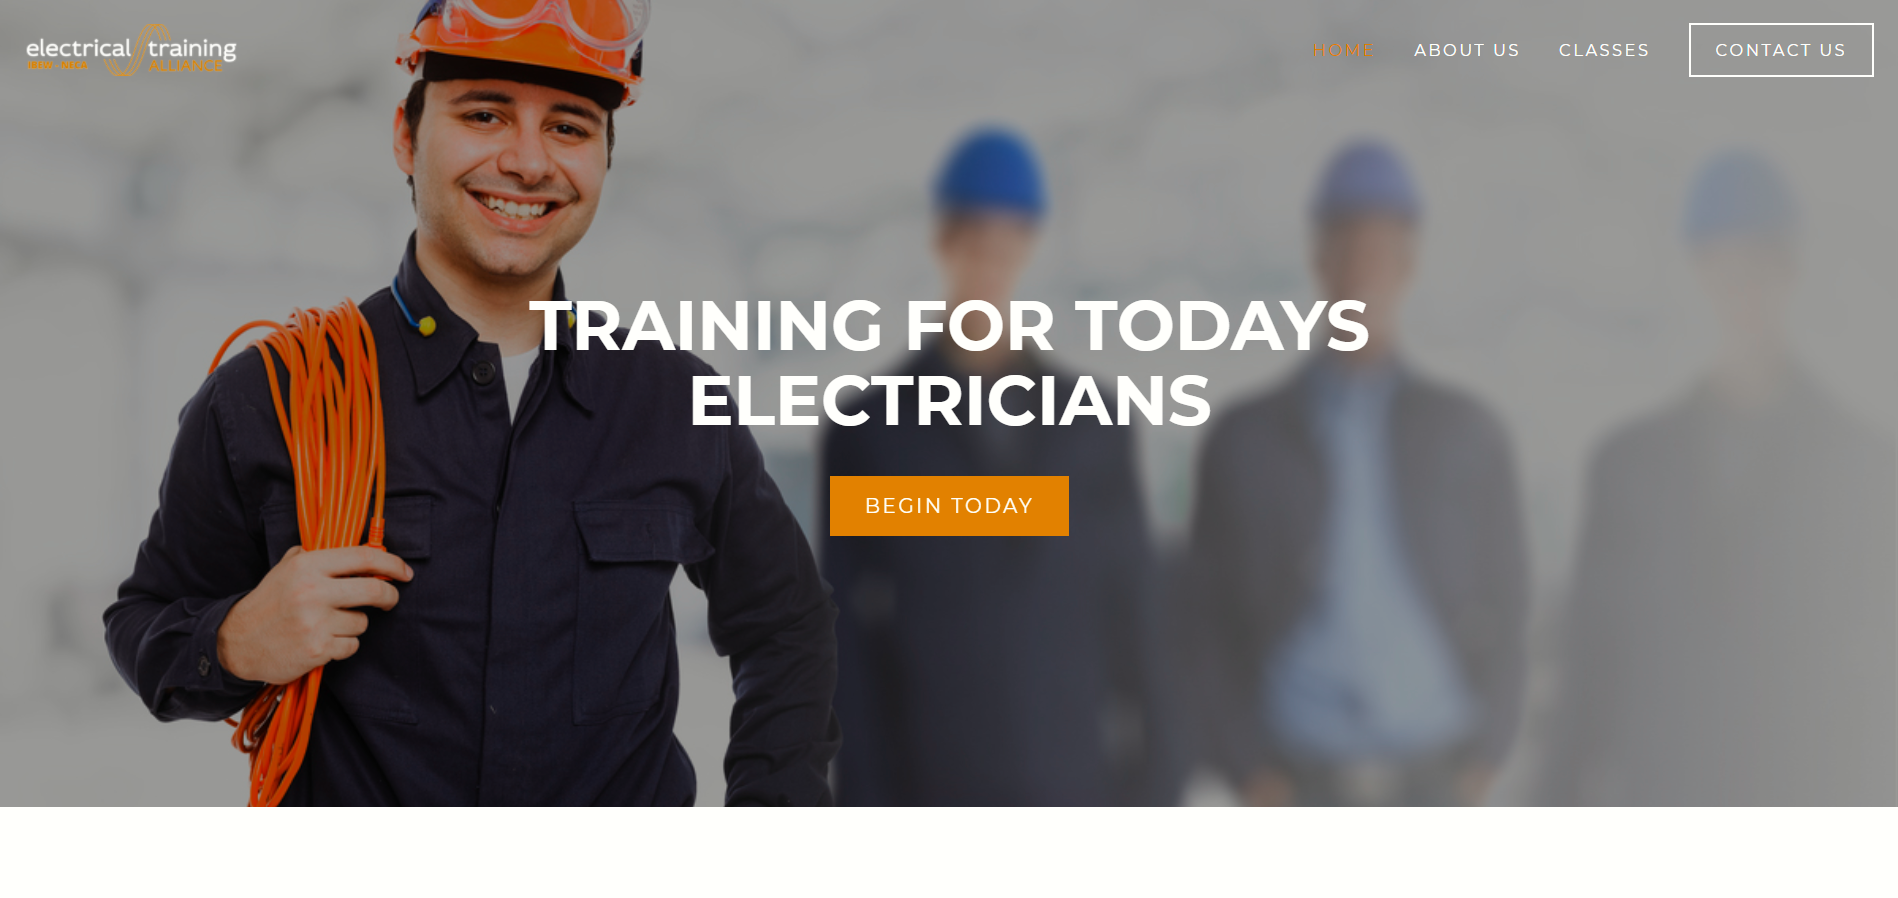 savannah electrical training alliance